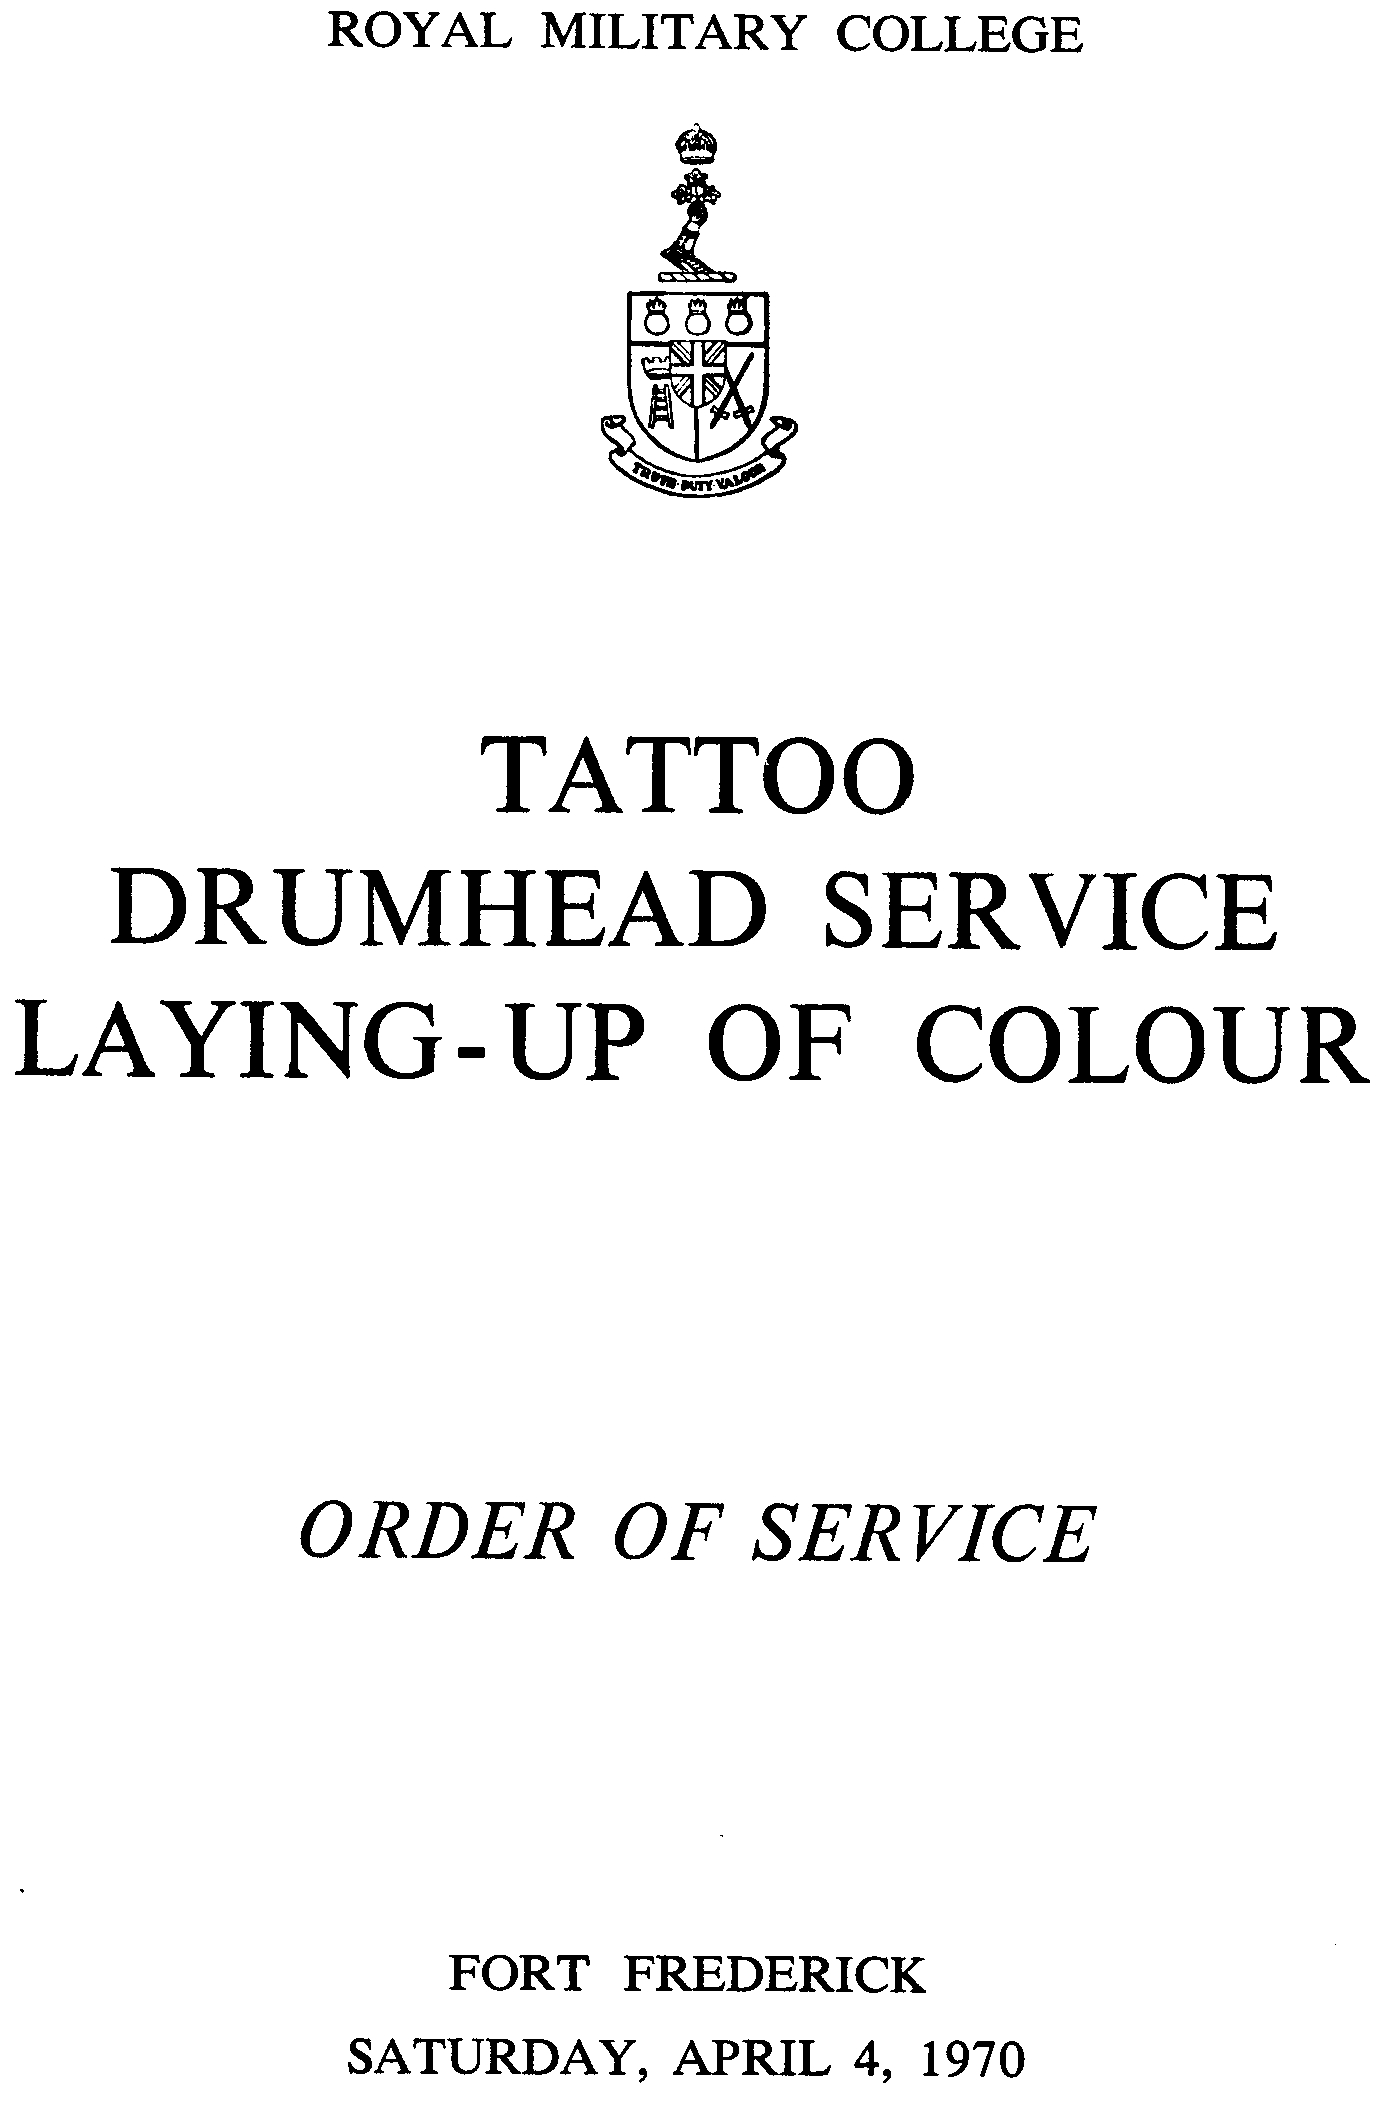 18 rmc tattoo drumhead service 04 apr 1970 cover front. Black Bedroom Furniture Sets. Home Design Ideas